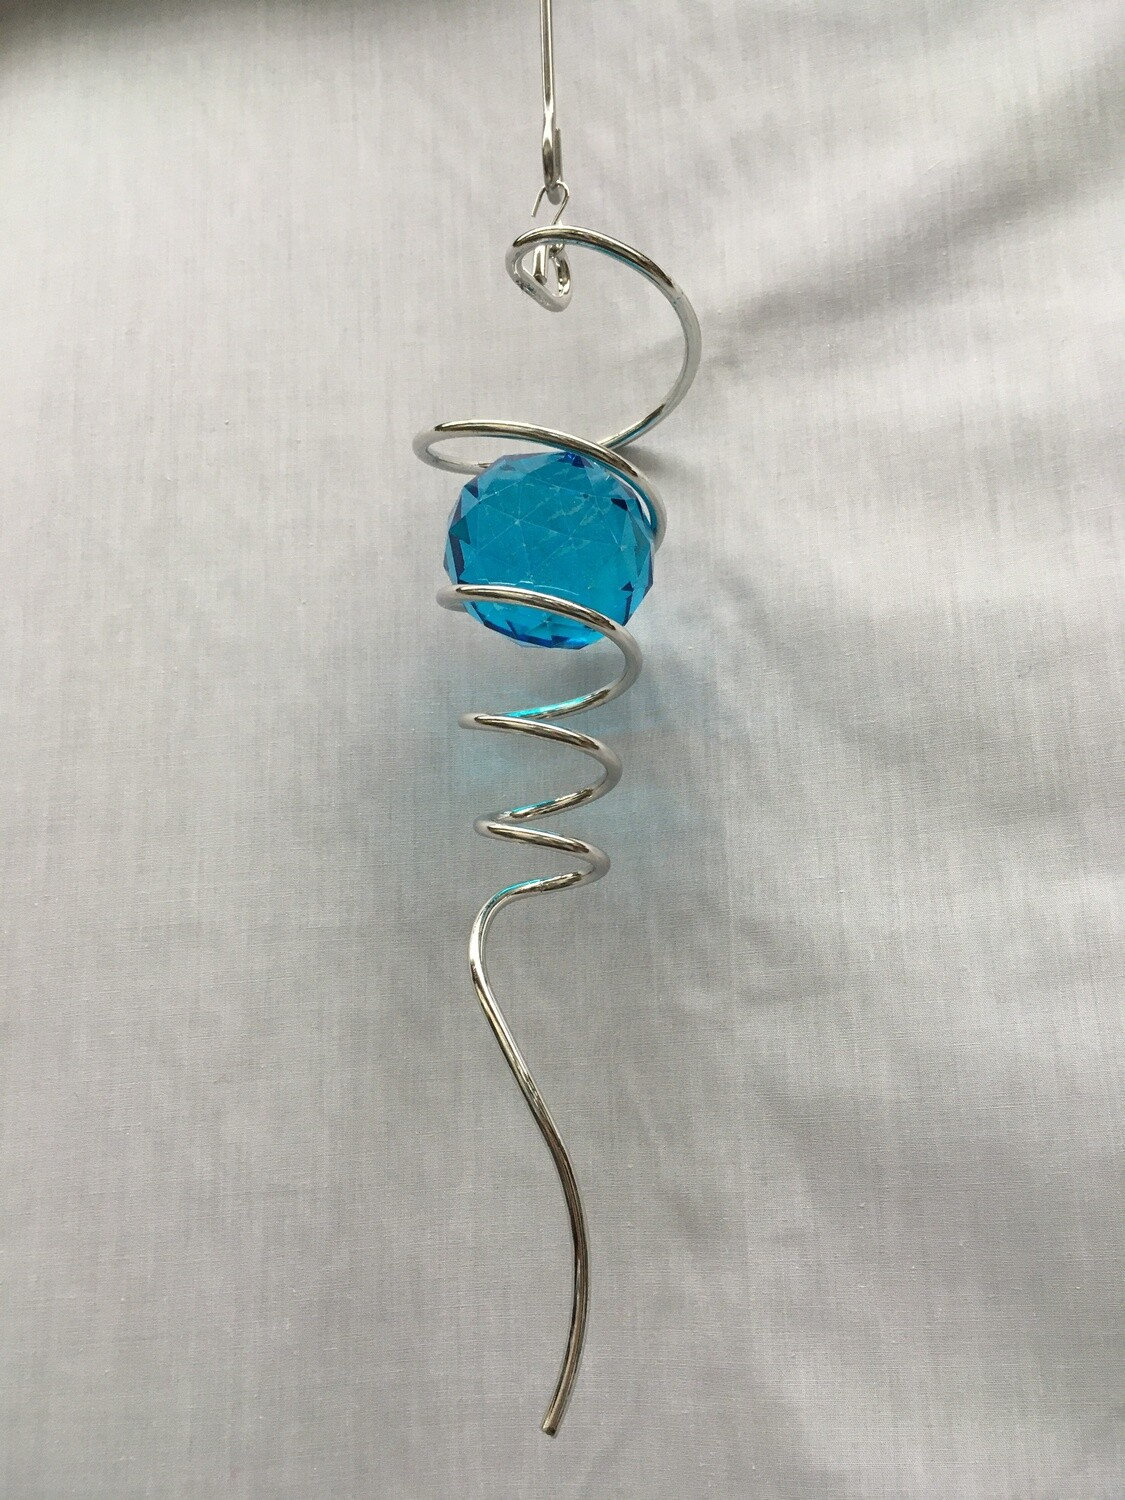 Spiral Tail with blue/aqua crystal - 10 inch